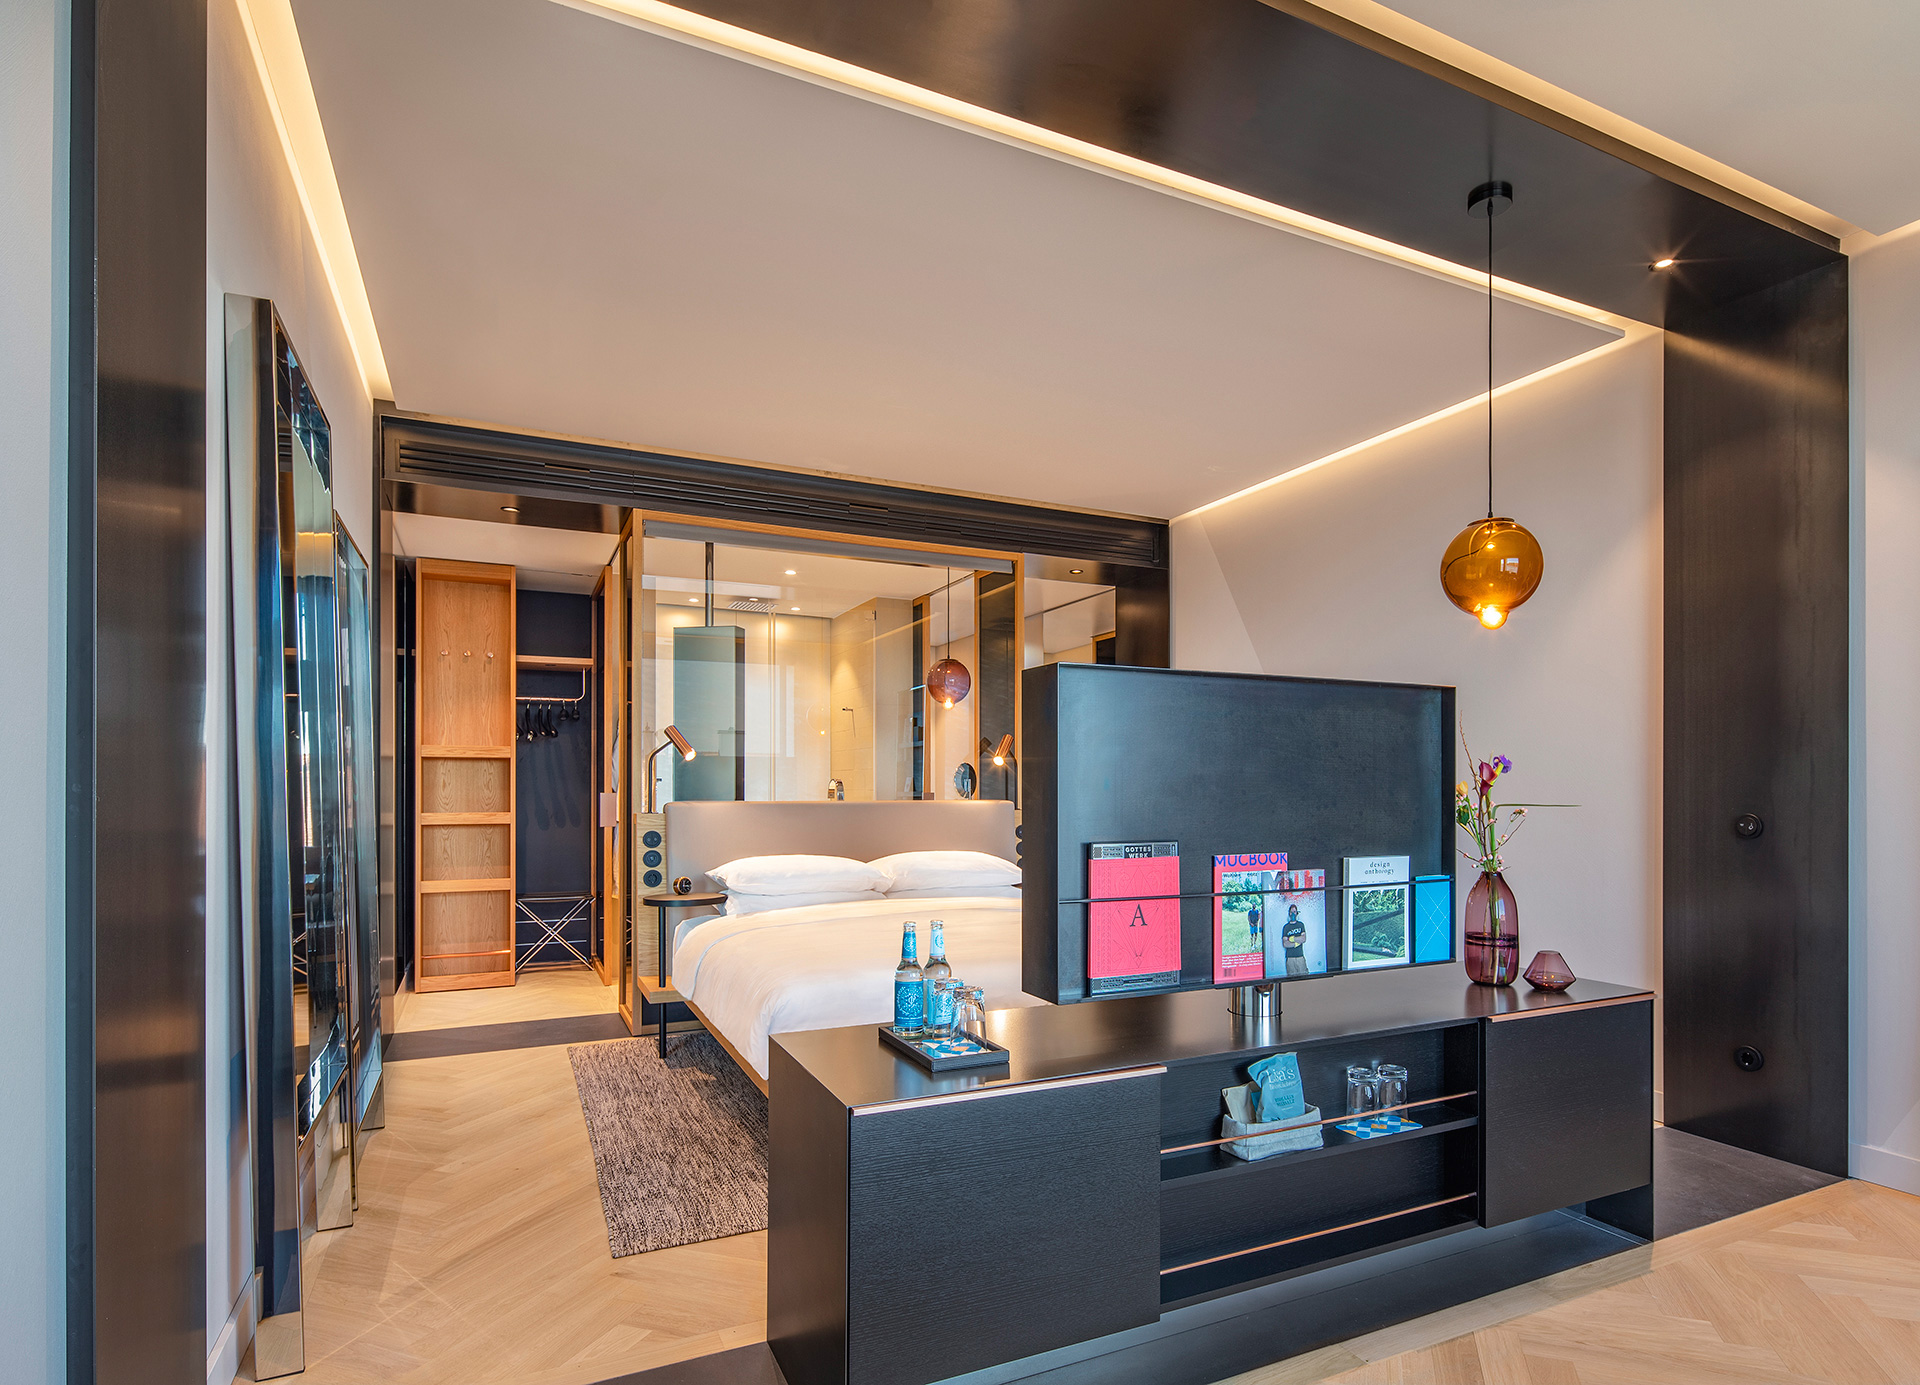 A modern loft was the inspiration for hotel rooms where instead of conventional walls, two raw steel frames divide it into a bathroom, bedroom and living area to create a contemporary en-suite| Andaz Munich Schwabinger Tor| Concrete| STIR